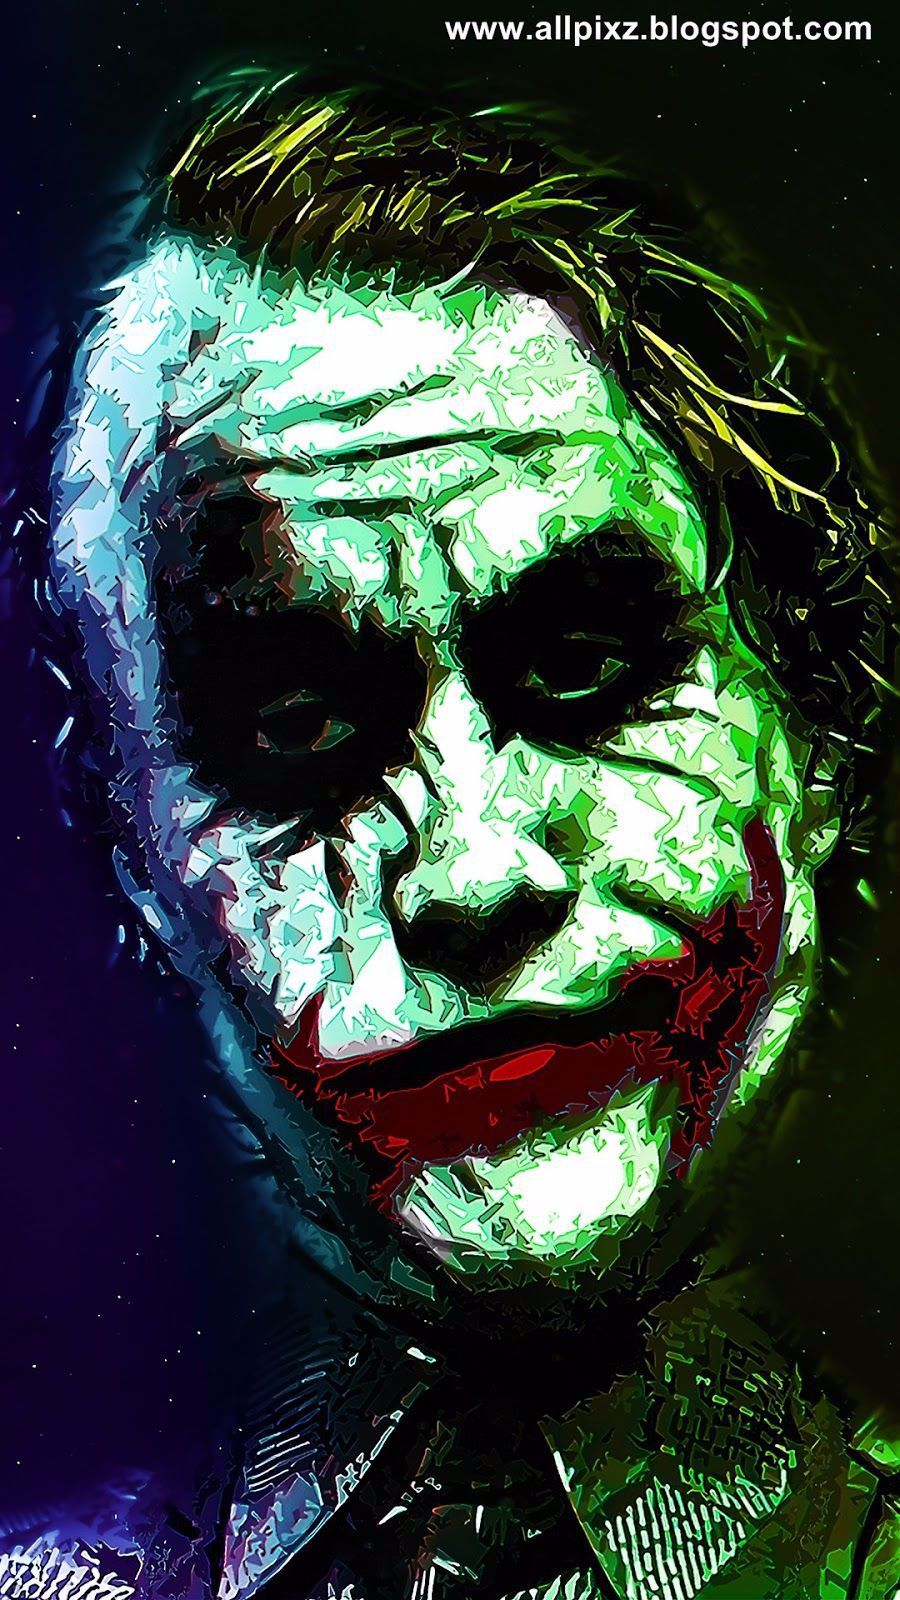 Joker Batman 4k Mobile Wallpaper In 2020 Joker Wallpapers Joker Hd Wallpaper Joker Art